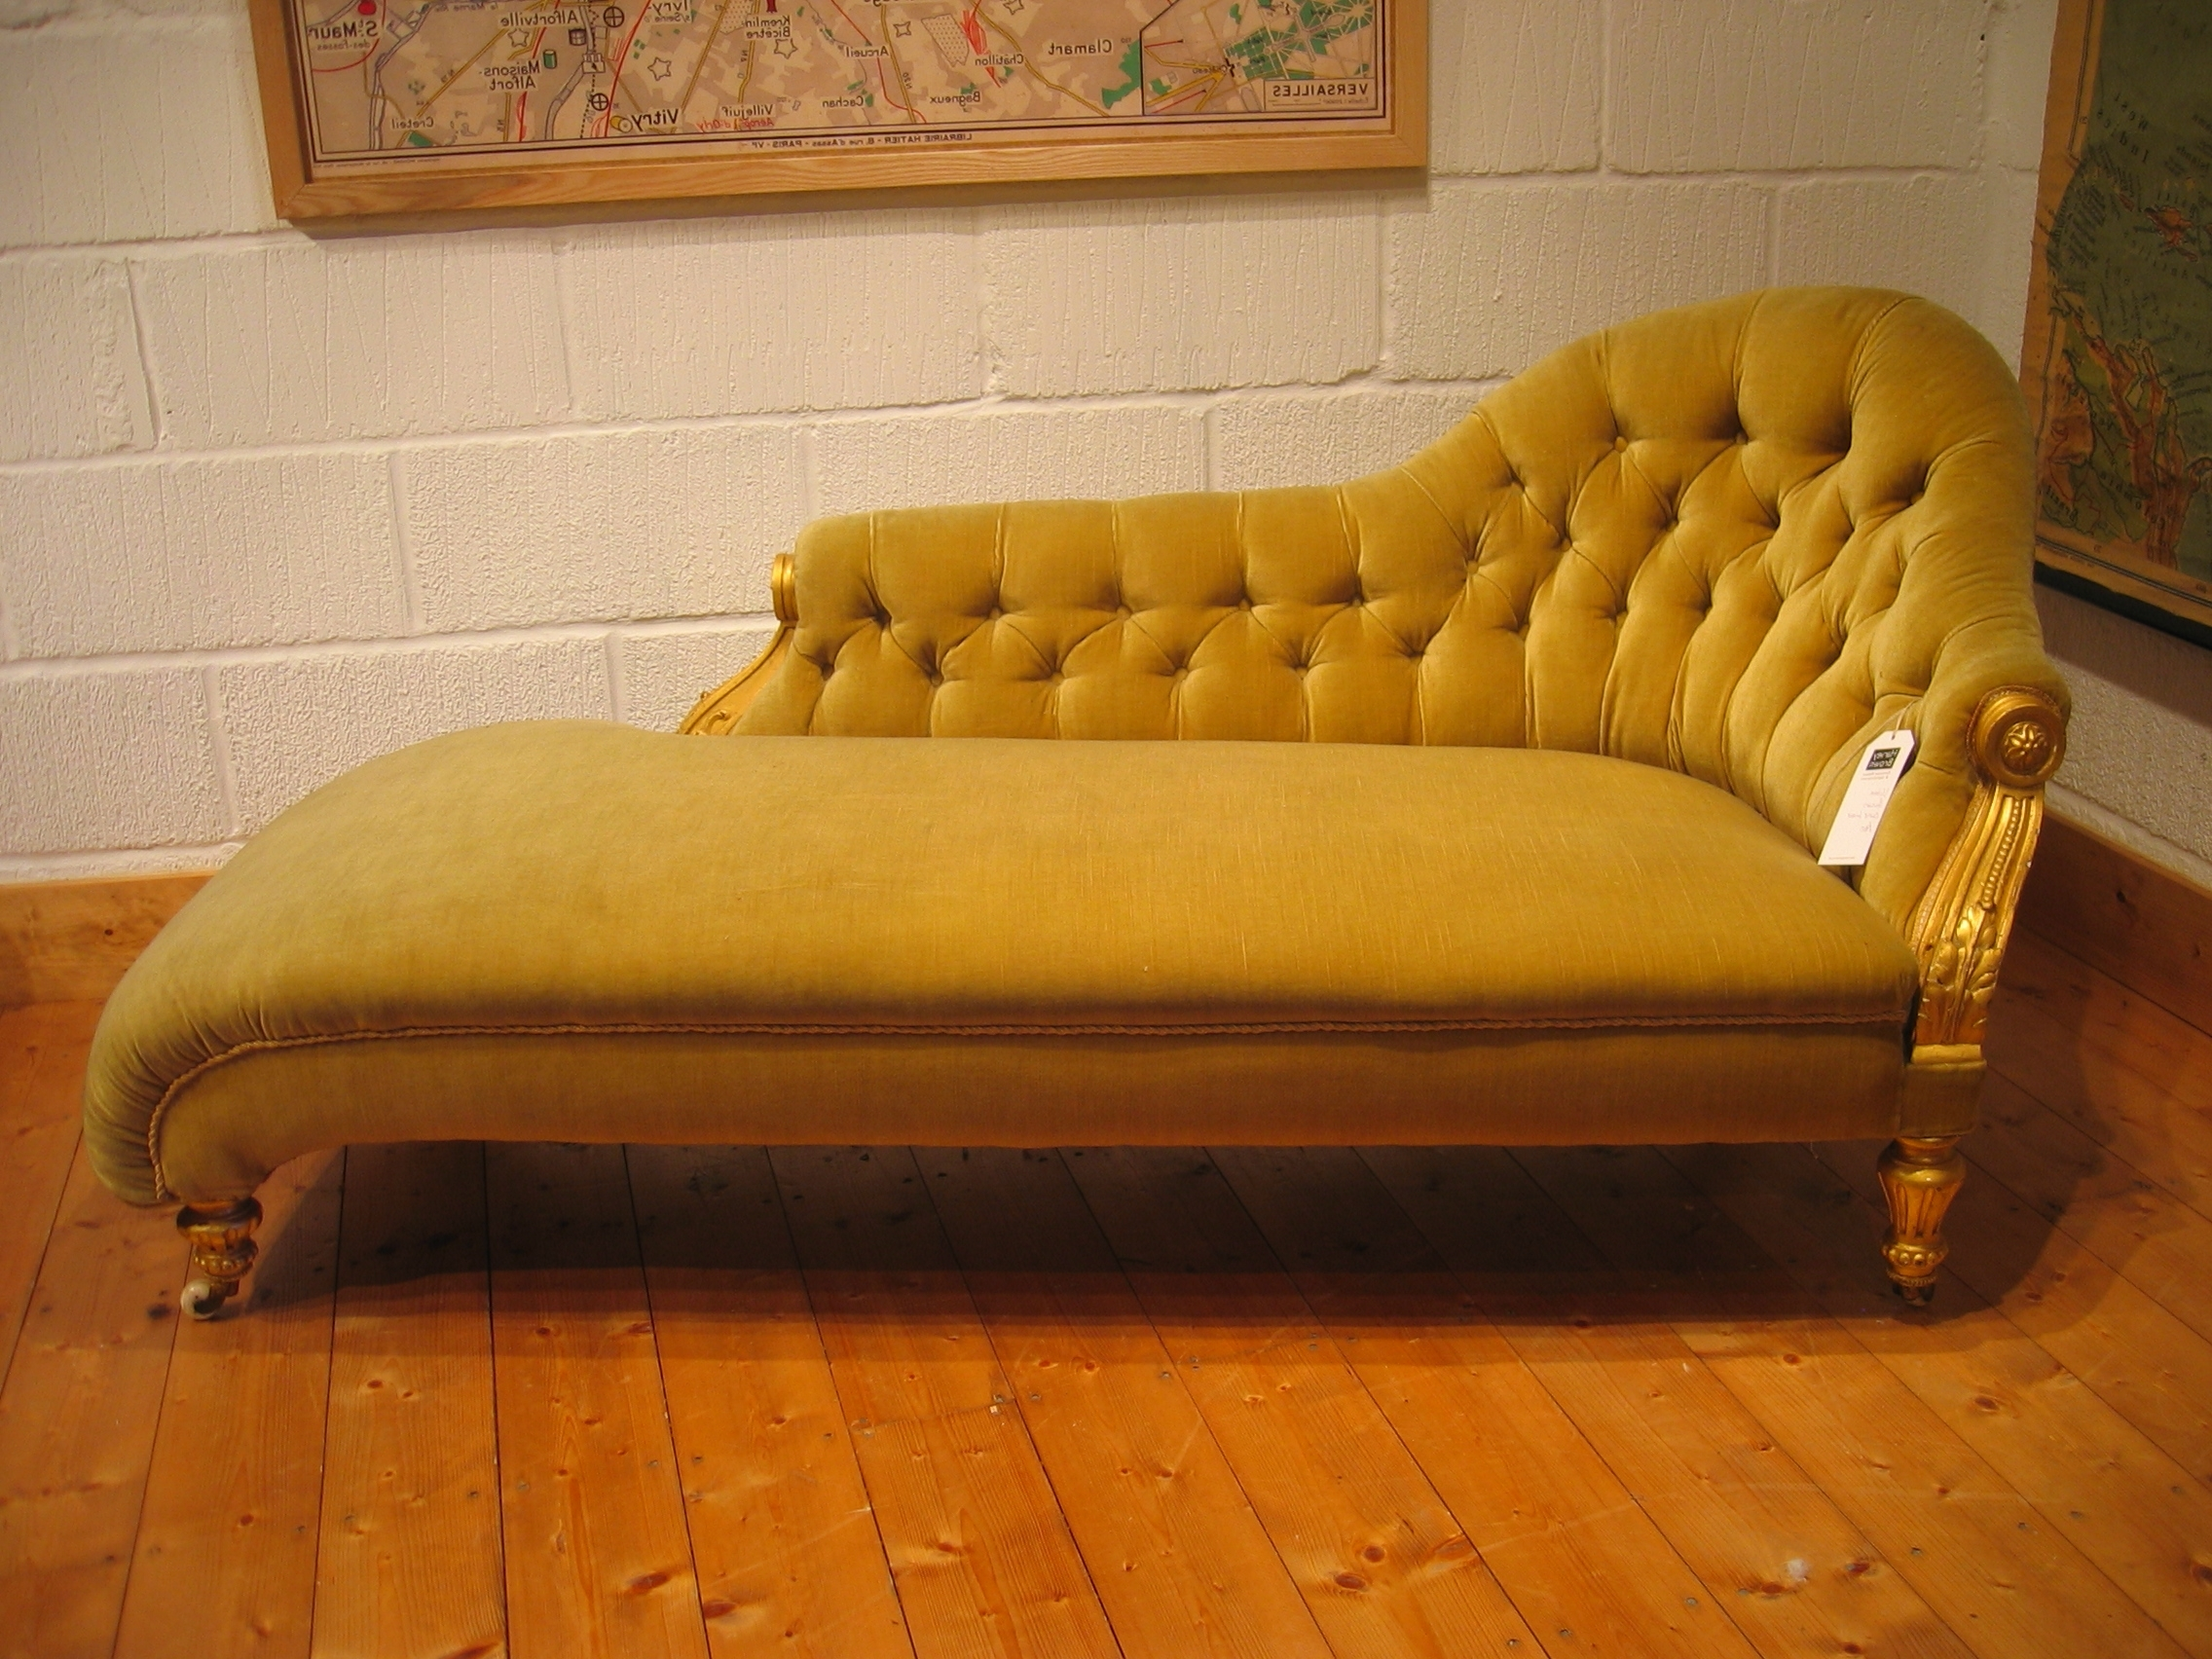 Cheap Chaise Lounge Chairs For 2017 Yellow Color Antique Victorian Chaise Lounge Sofa Bed With Wooden (View 5 of 15)